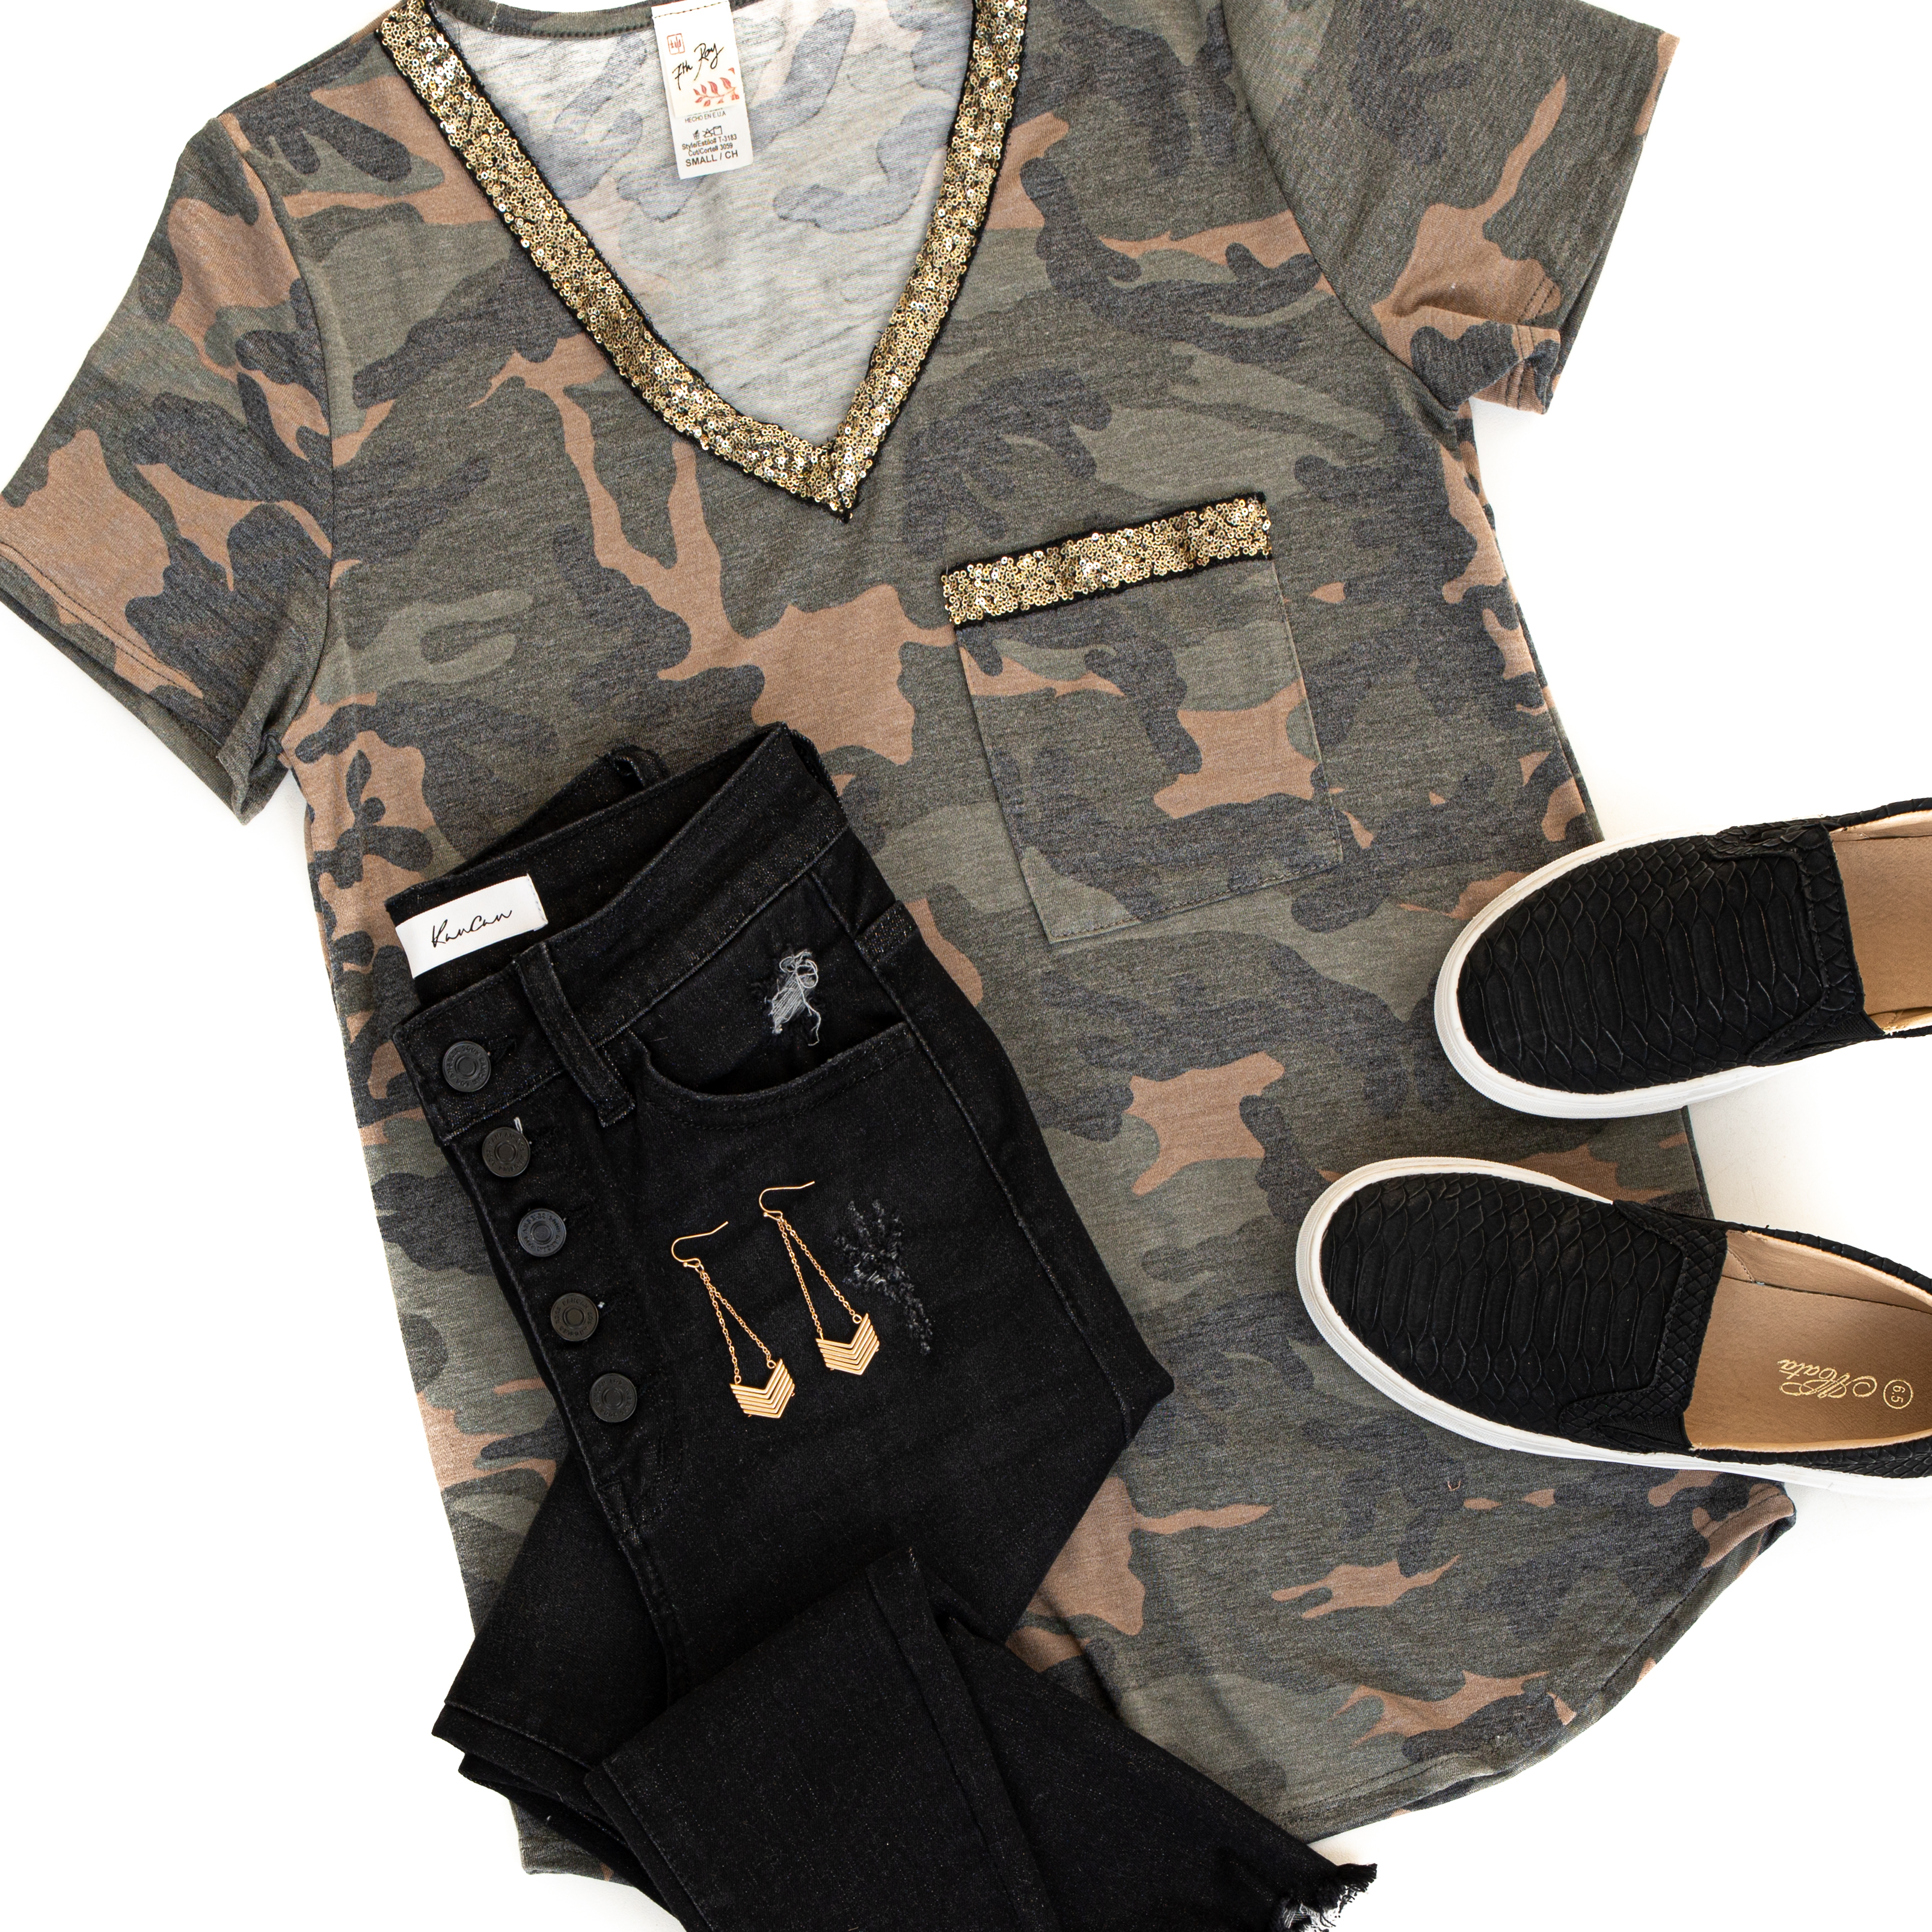 Olive Green Camo Short Sleeve Knit Top with Gold Sequins